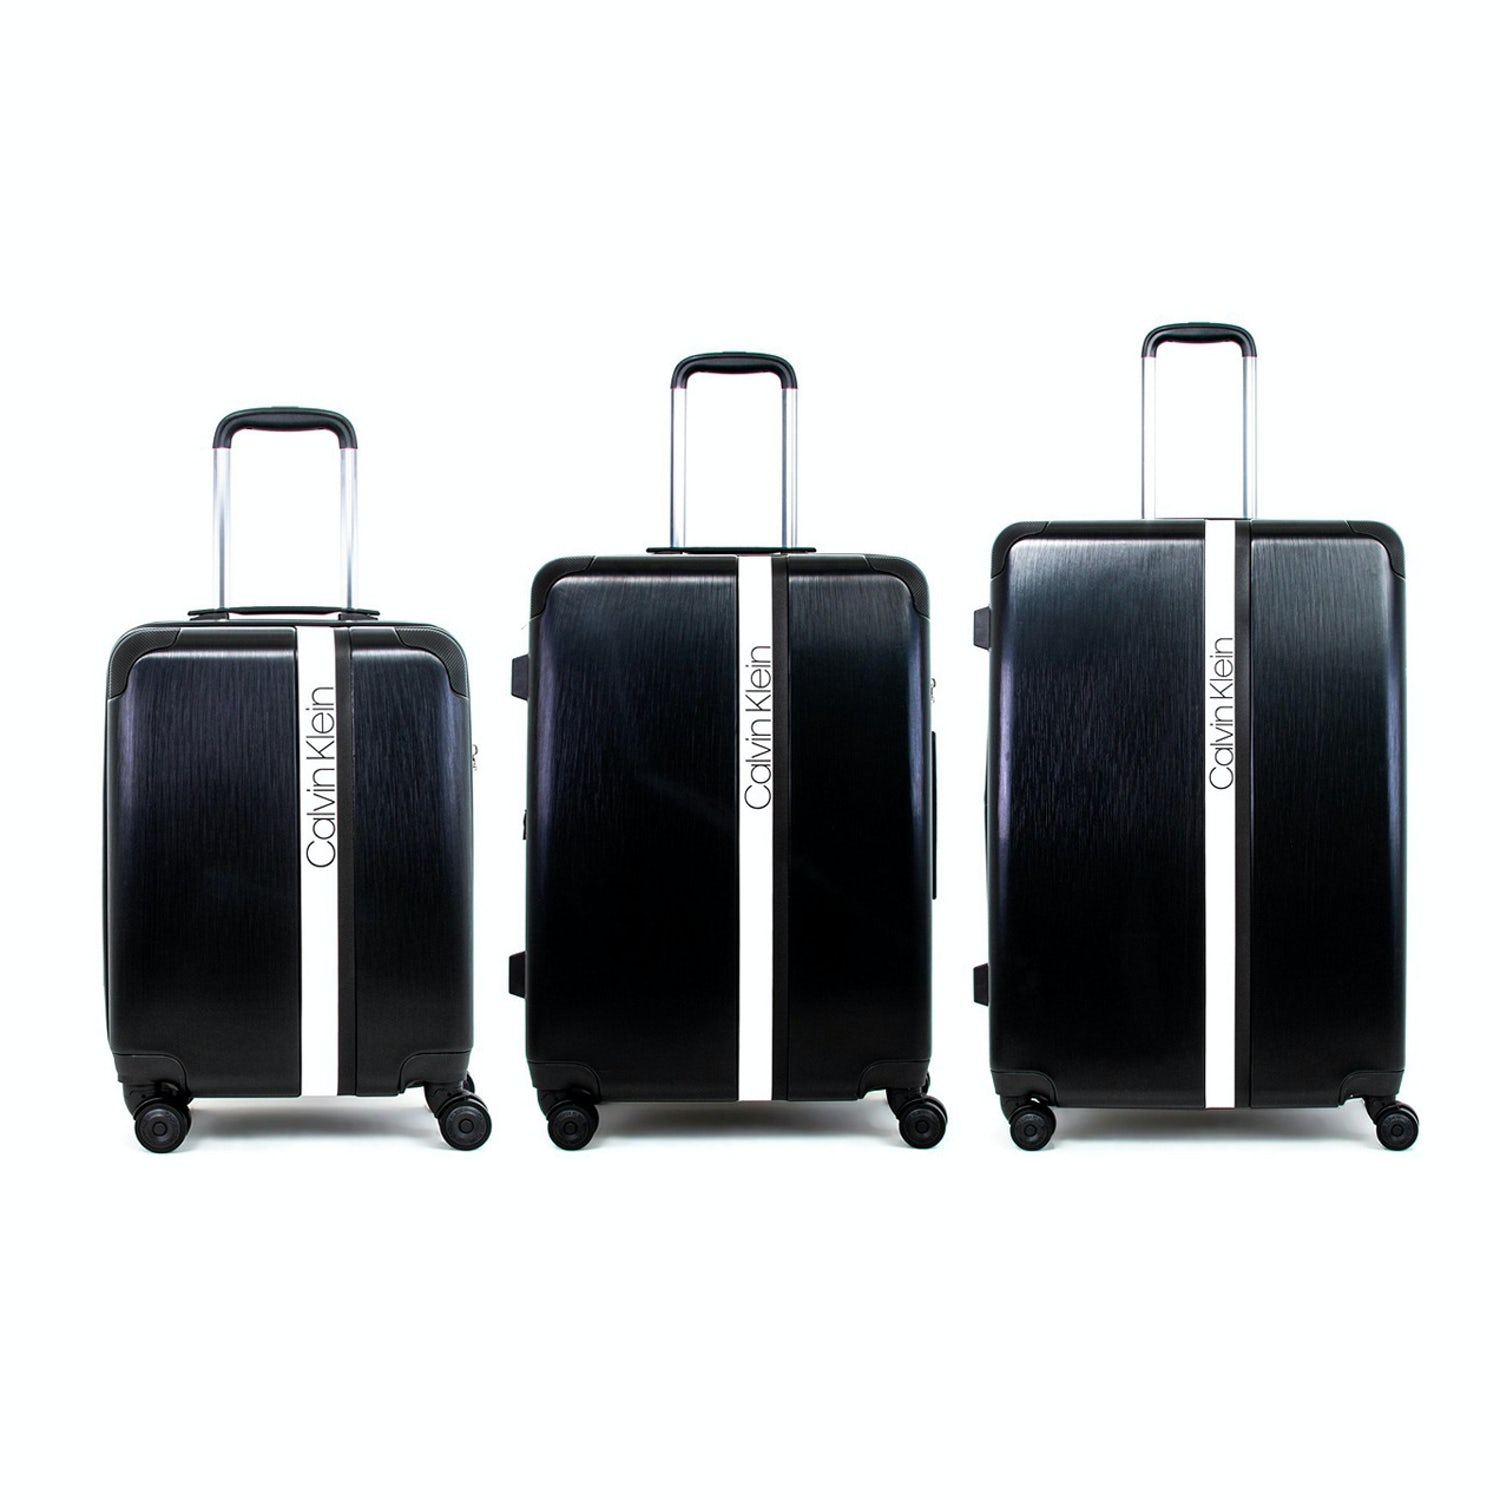 calvin klein luggage 0